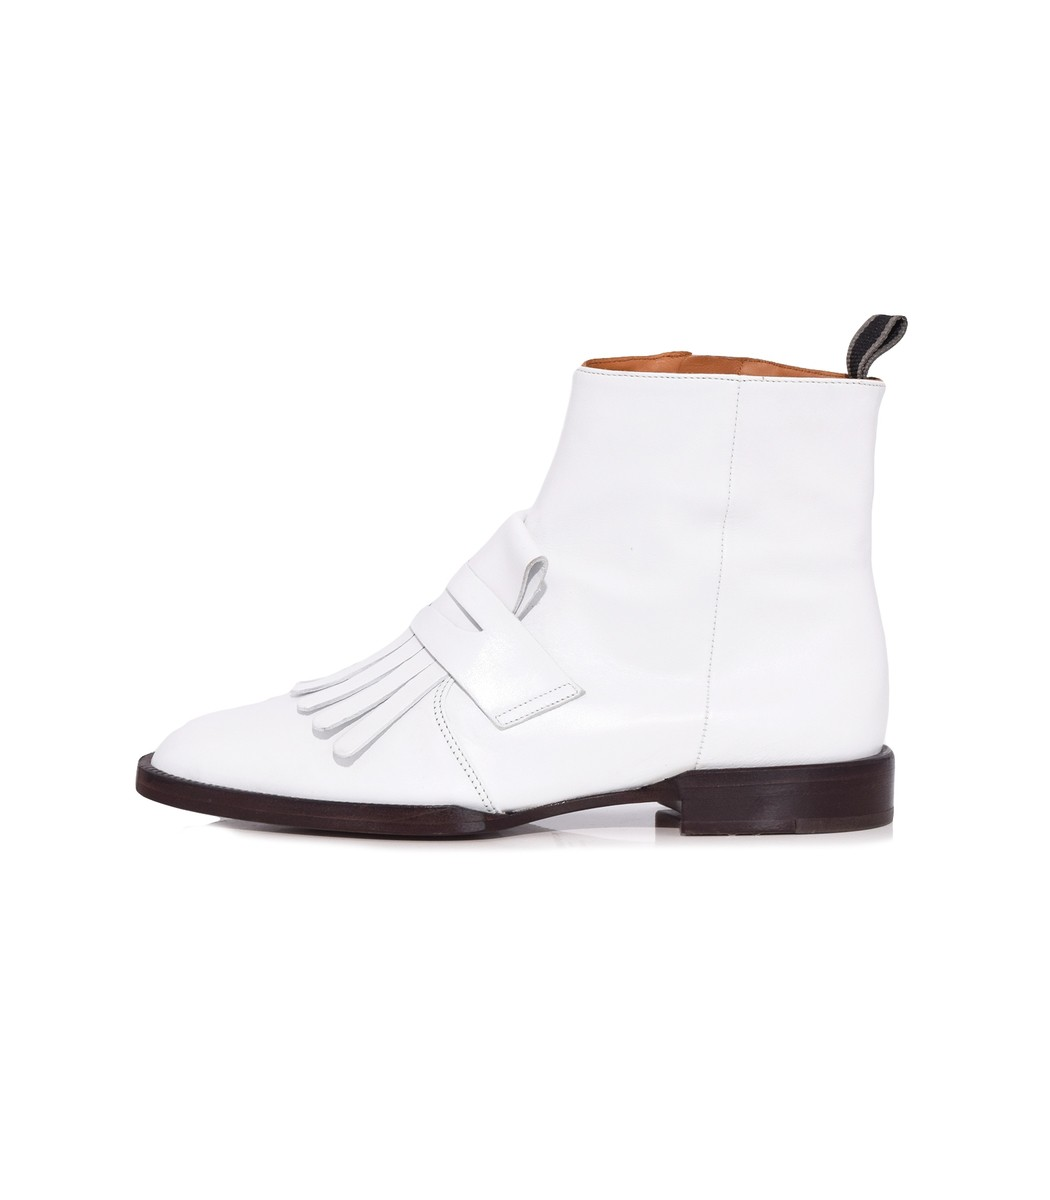 CLERGERIE Yousc Leather Ankle Boots - White Size 7.5